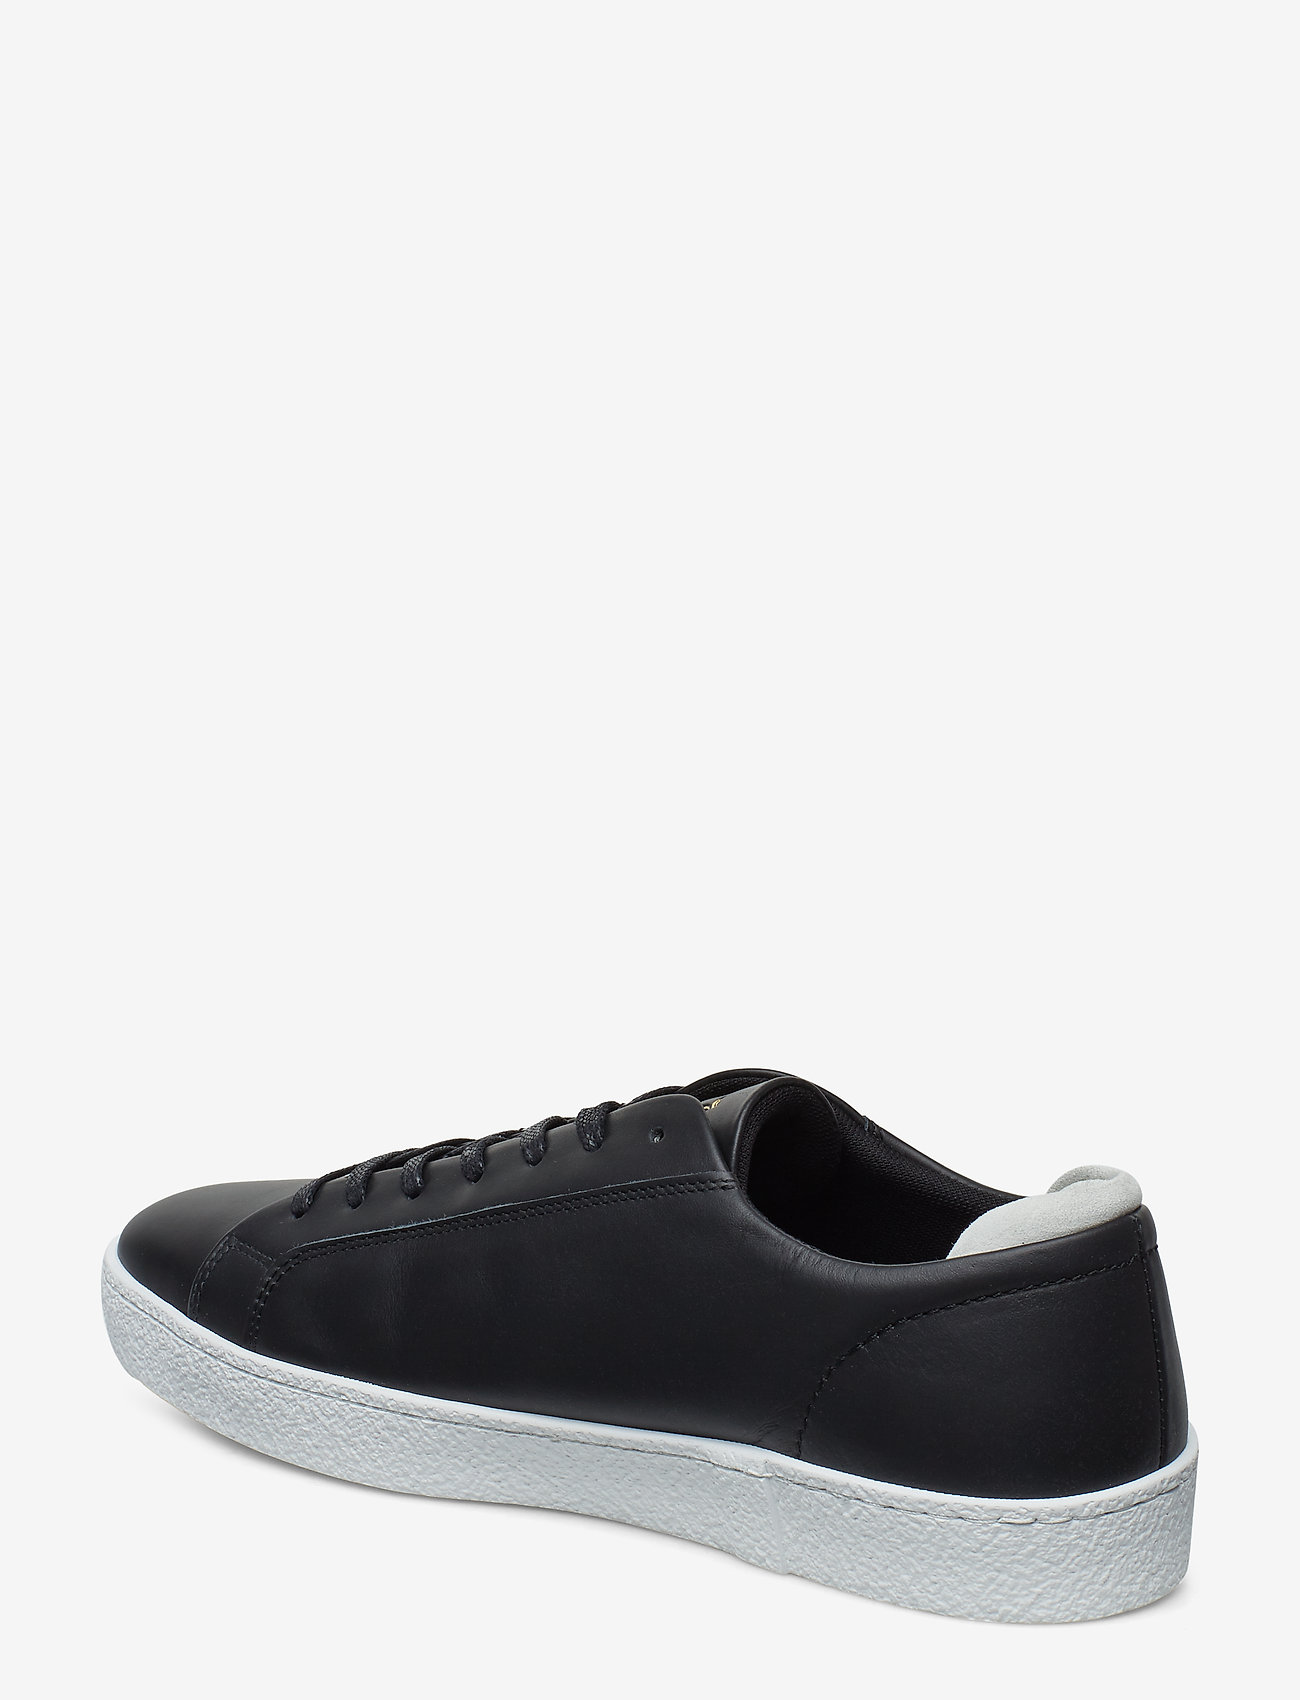 Le Coq Sportif Club - Sneakers Black/grey